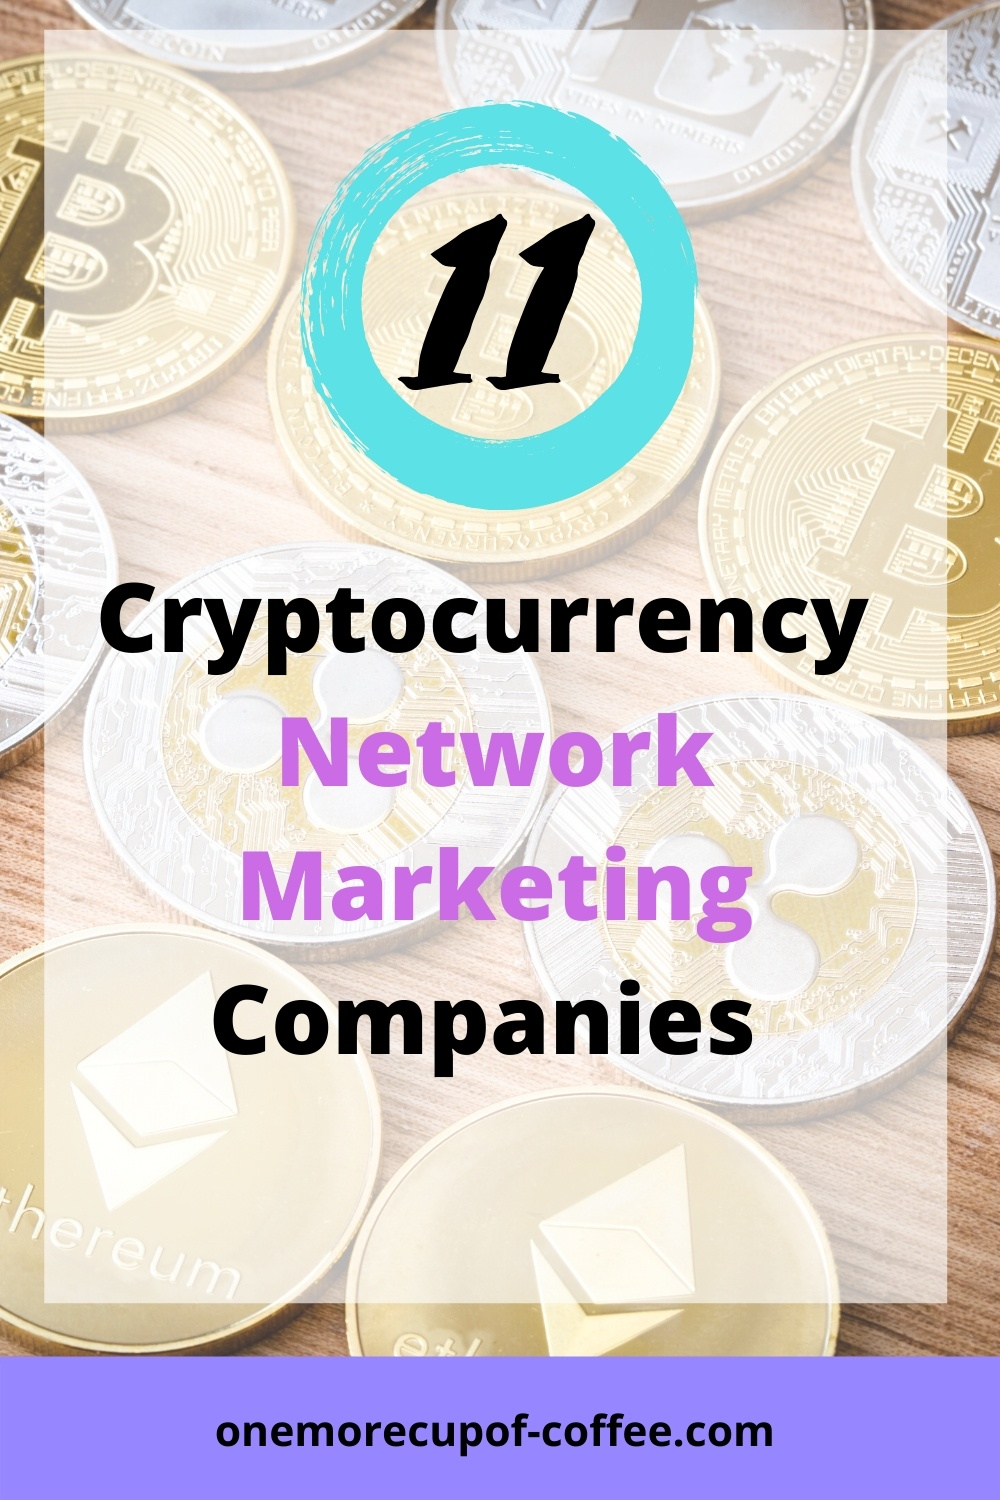 Cryptocurrency image to represent Cryptocurrency Network Marketing Companies